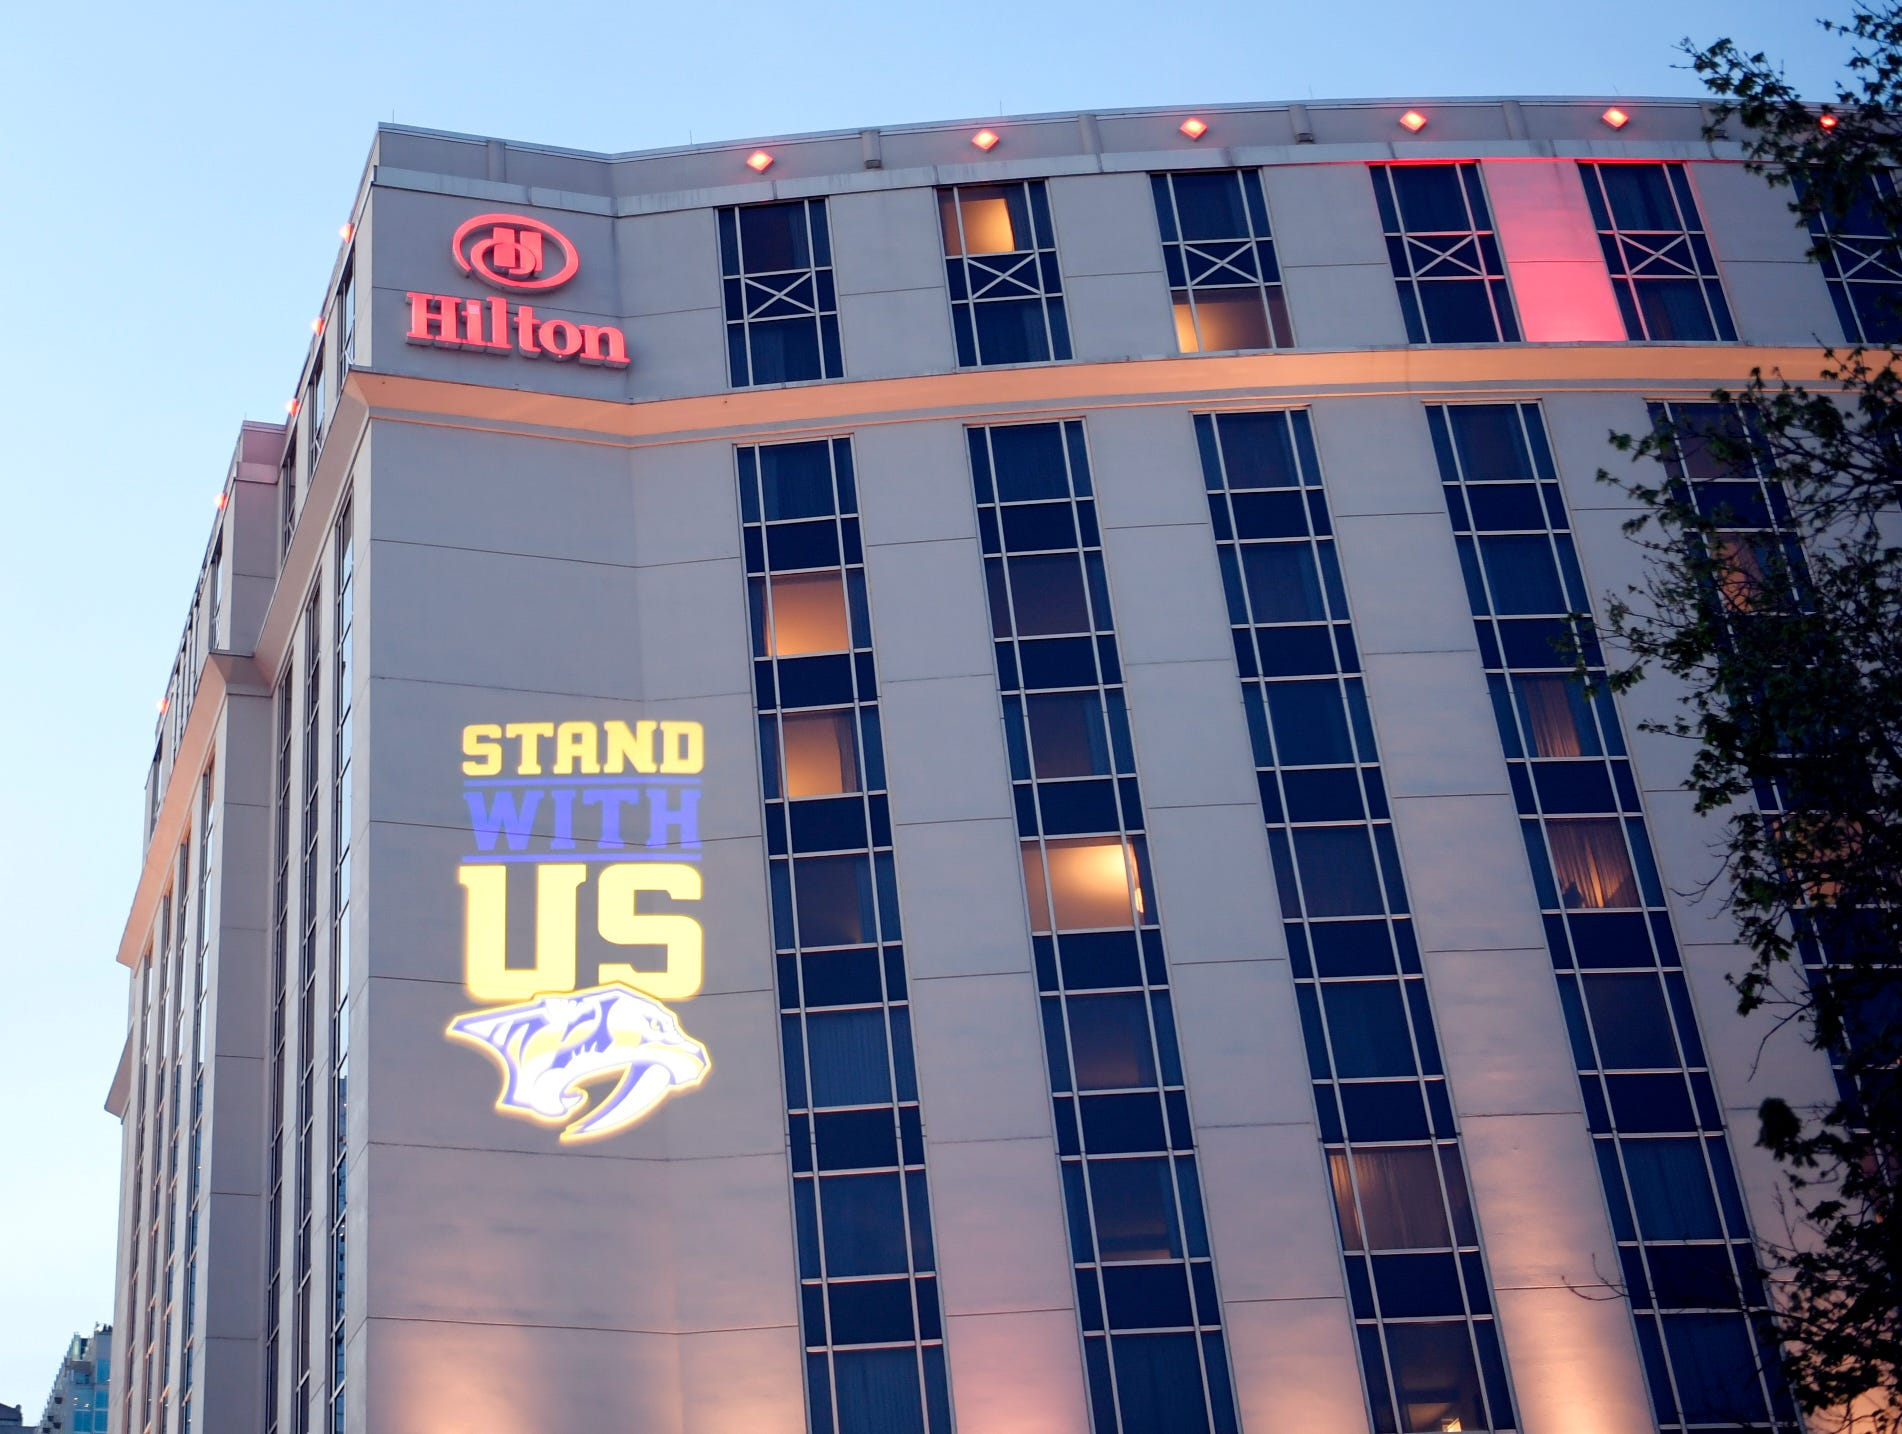 The Hilton is decked out with Predators spirit before the divisional semifinal game at Bridgestone Arena against the Dallas Stars in Nashville, Tenn., Wednesday, April 10, 2019.